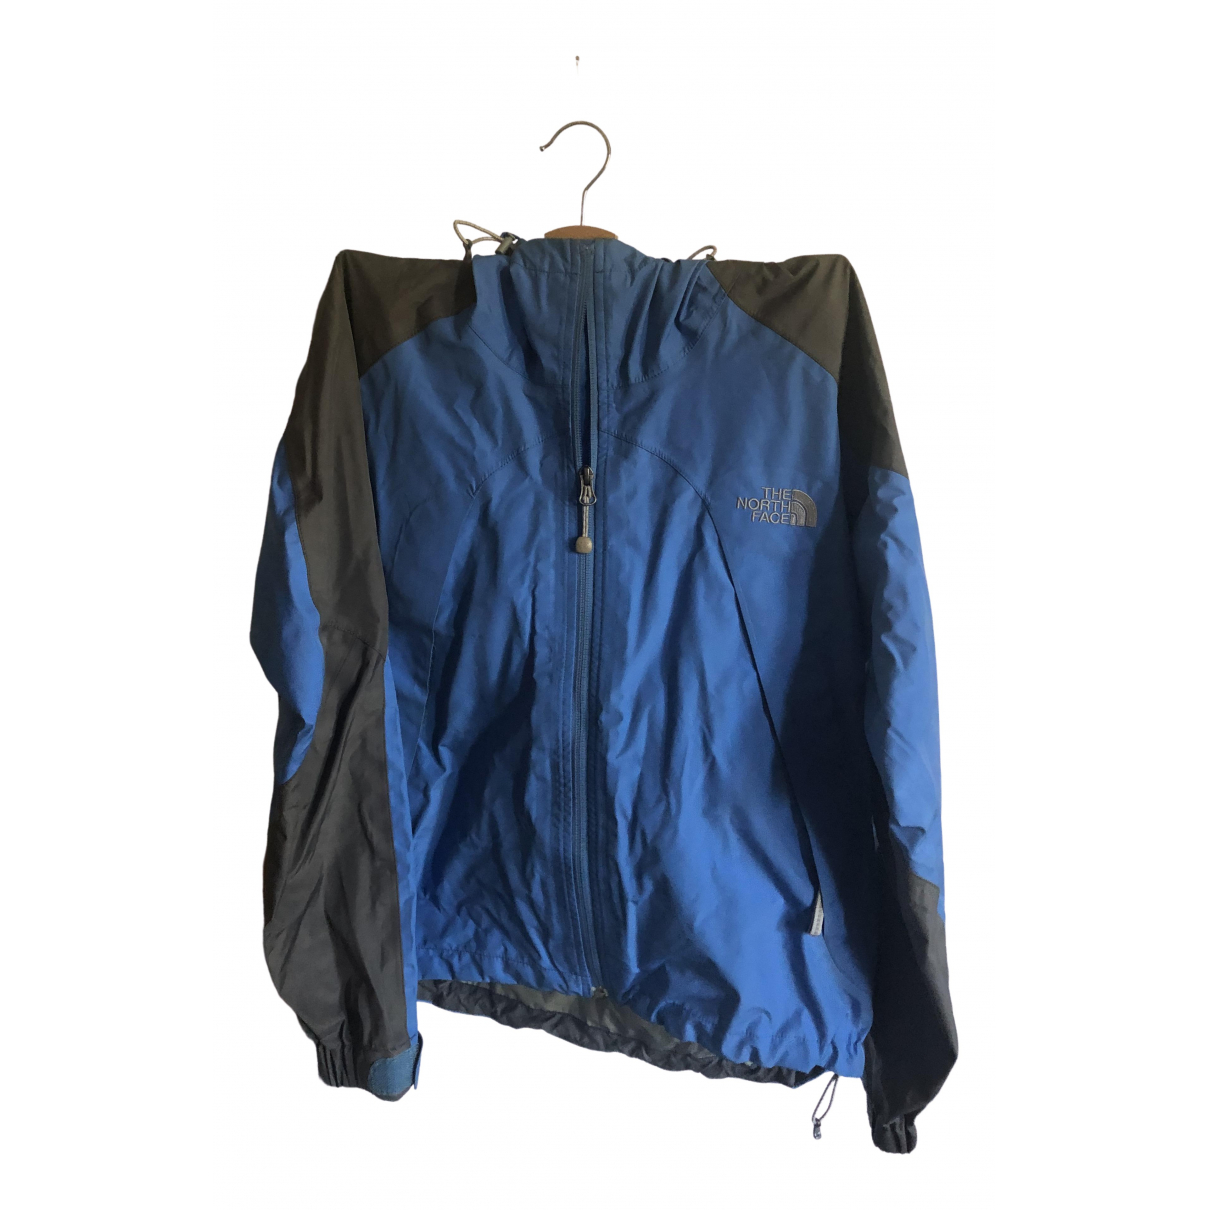 The North Face \N Blue jacket for Women S International